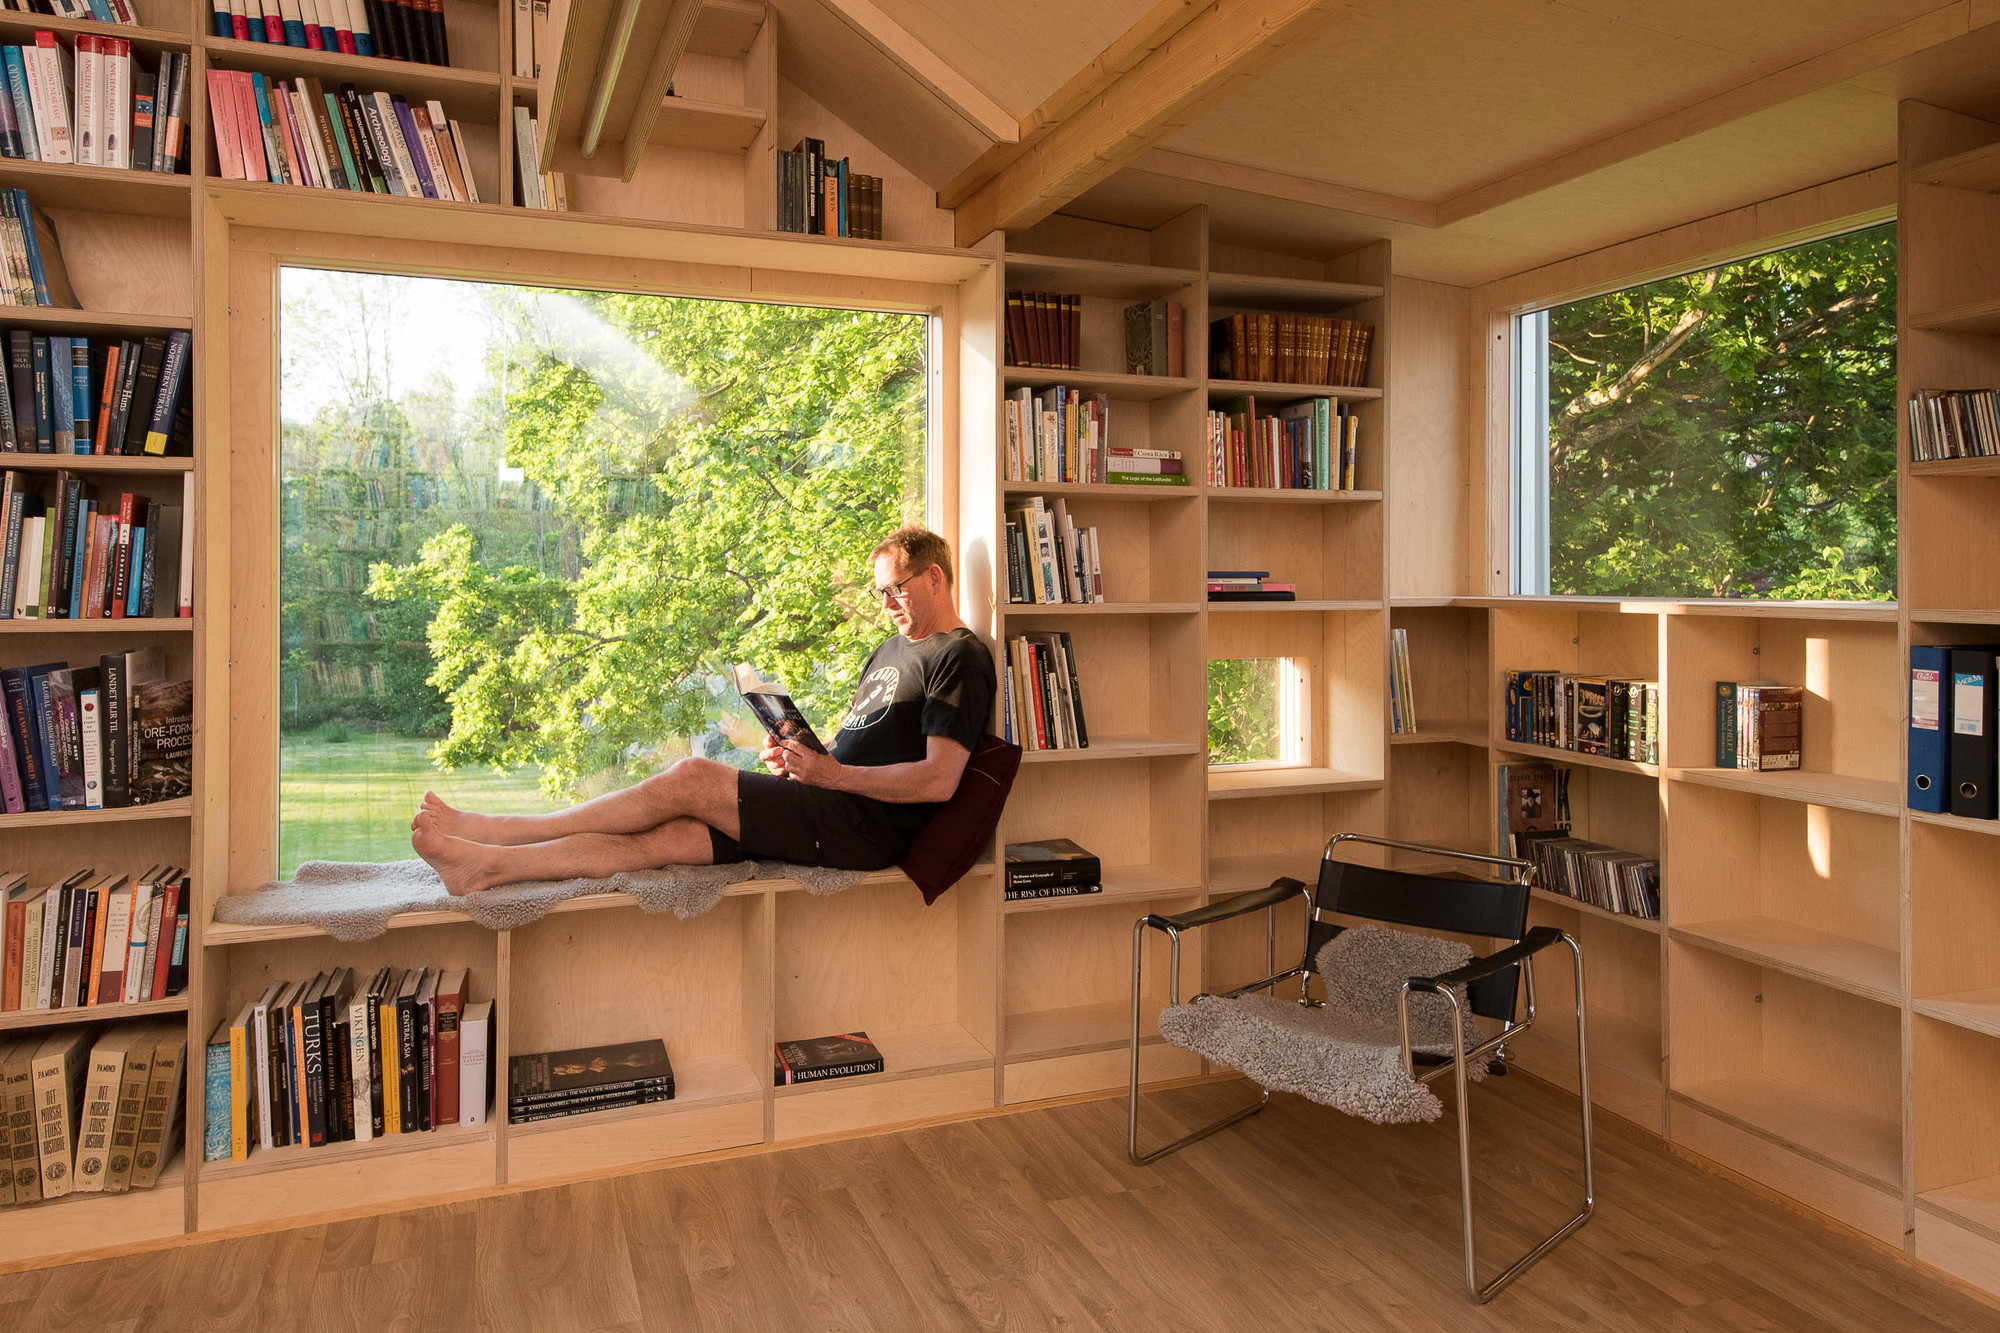 Gallery Of Transformation Of An Old Garage Into A Library